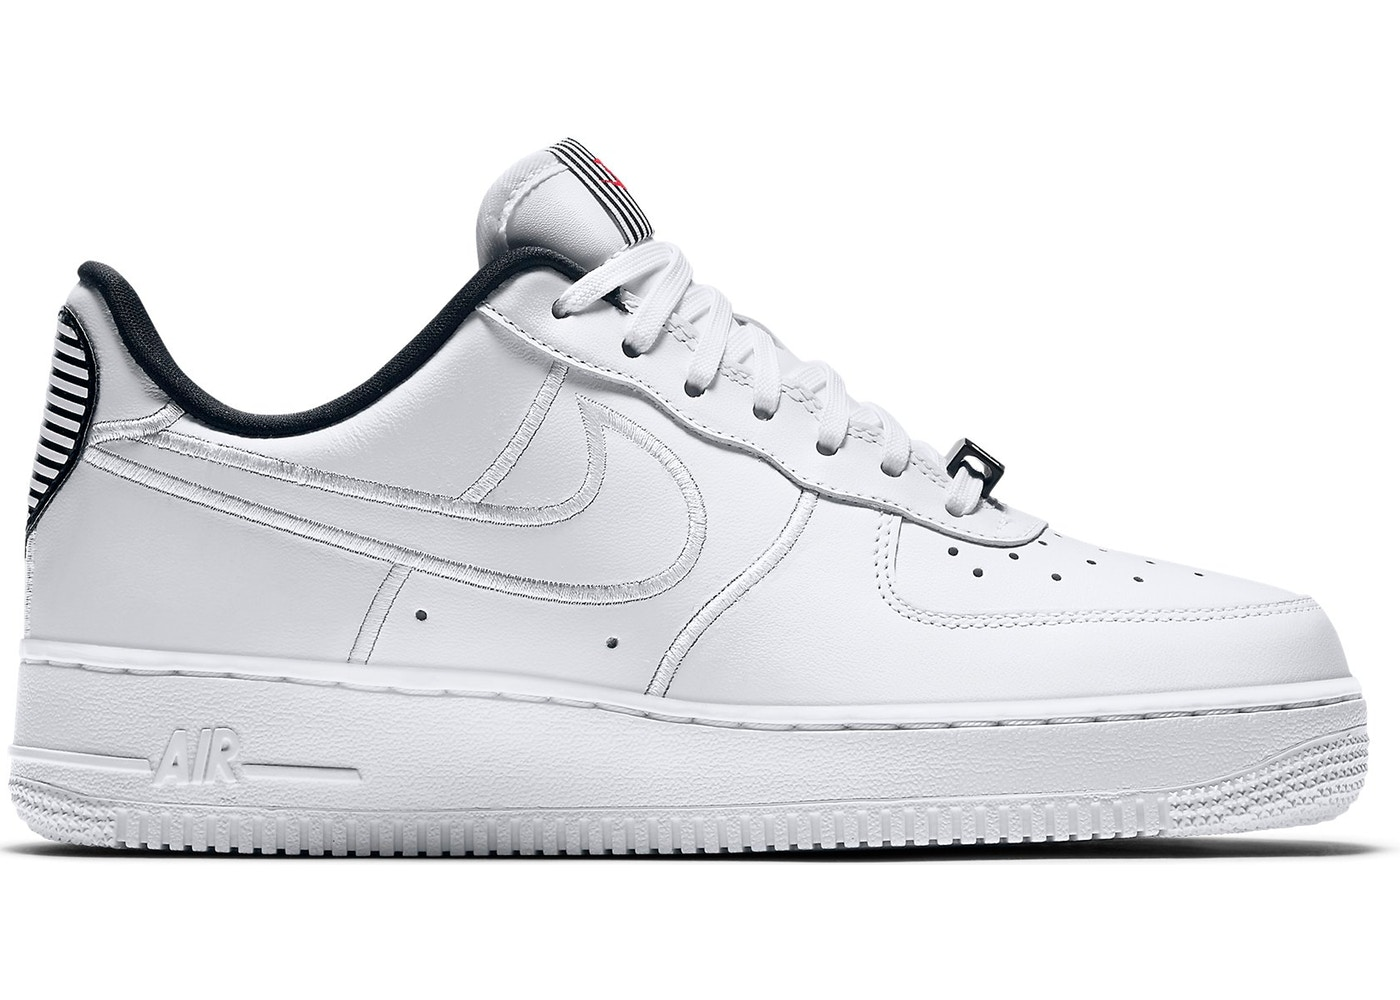 Nike Air Force 1 Low Valentine's Day 2018 (W)